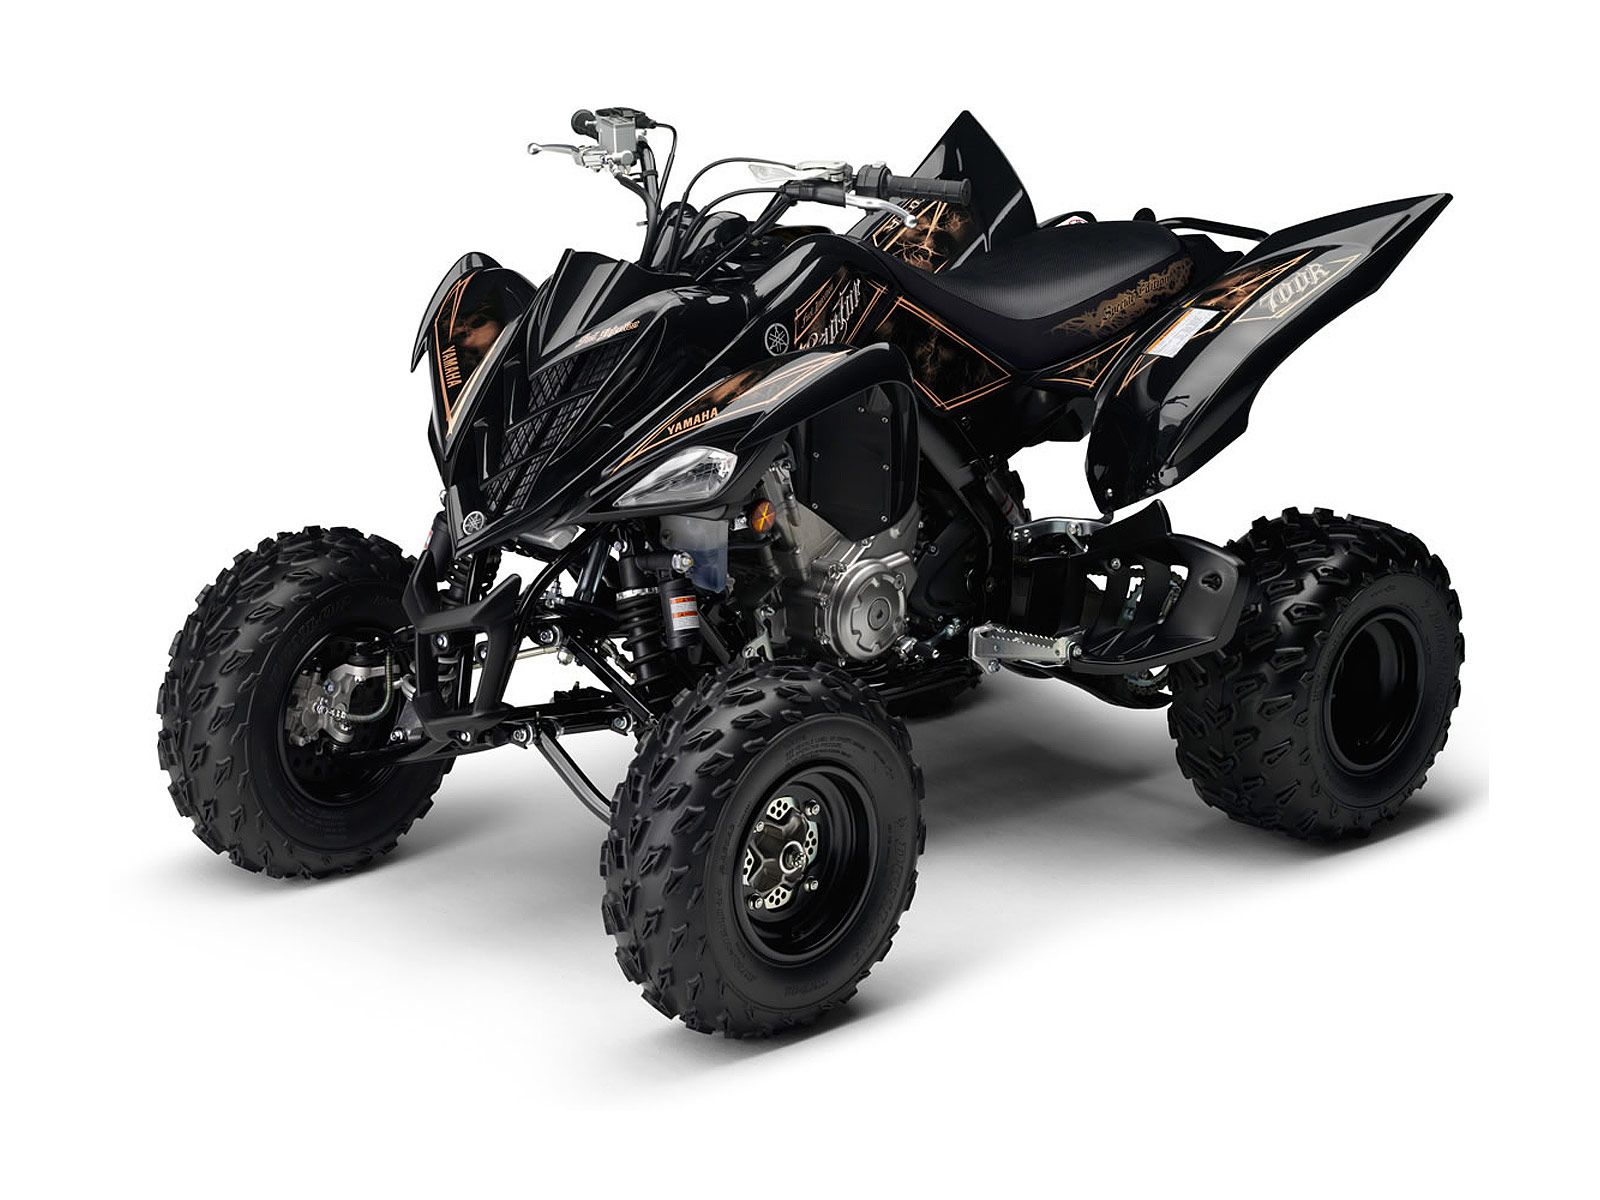 medium resolution of yamaha raptor 700r this is my favorite color scheme from the factory moto quad